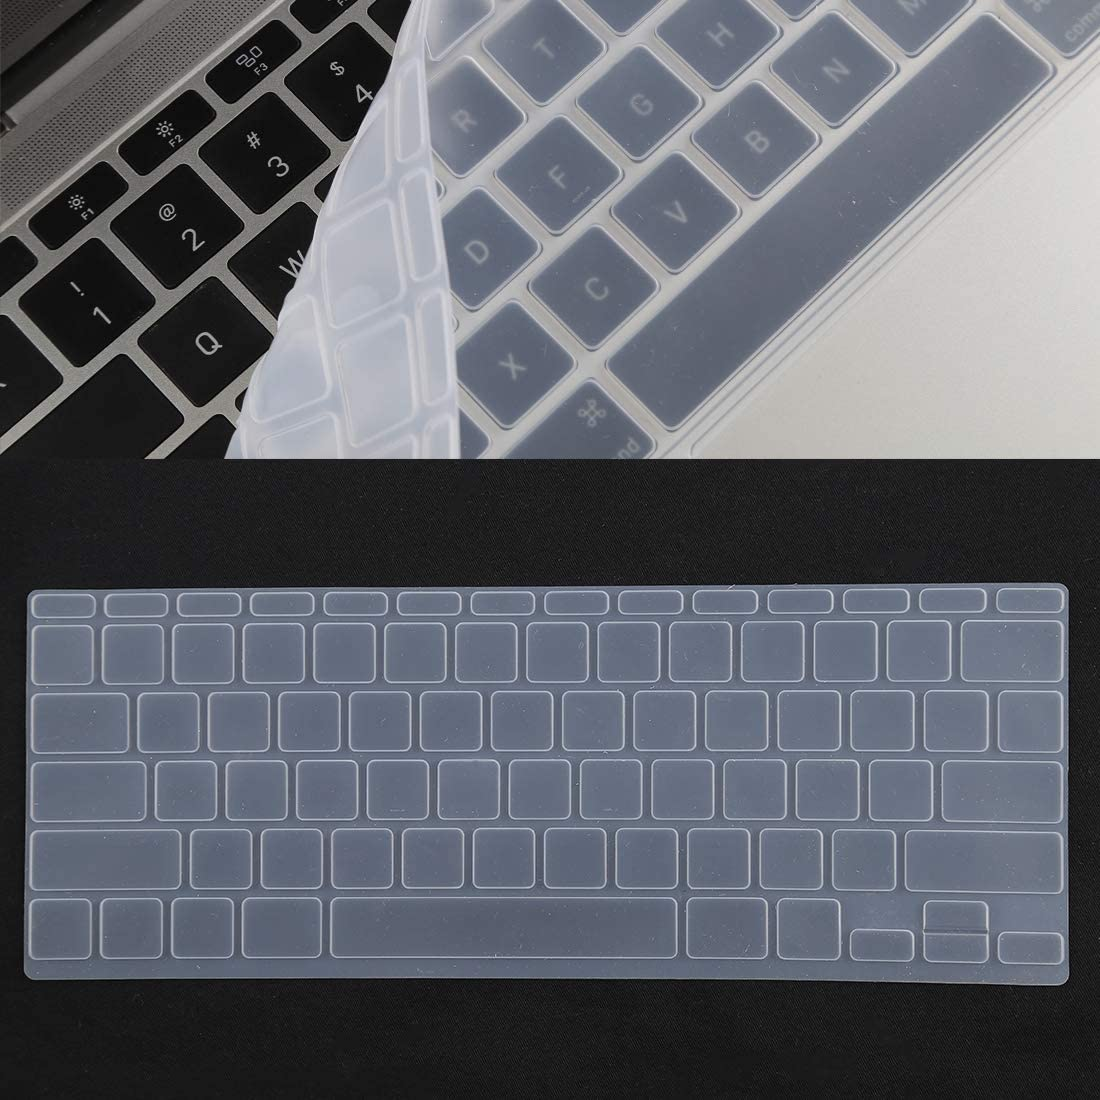 A1370 // A1465 Color : White Black Keyboard Protector Silica Gel Film for MacBook Air 11.6 inch